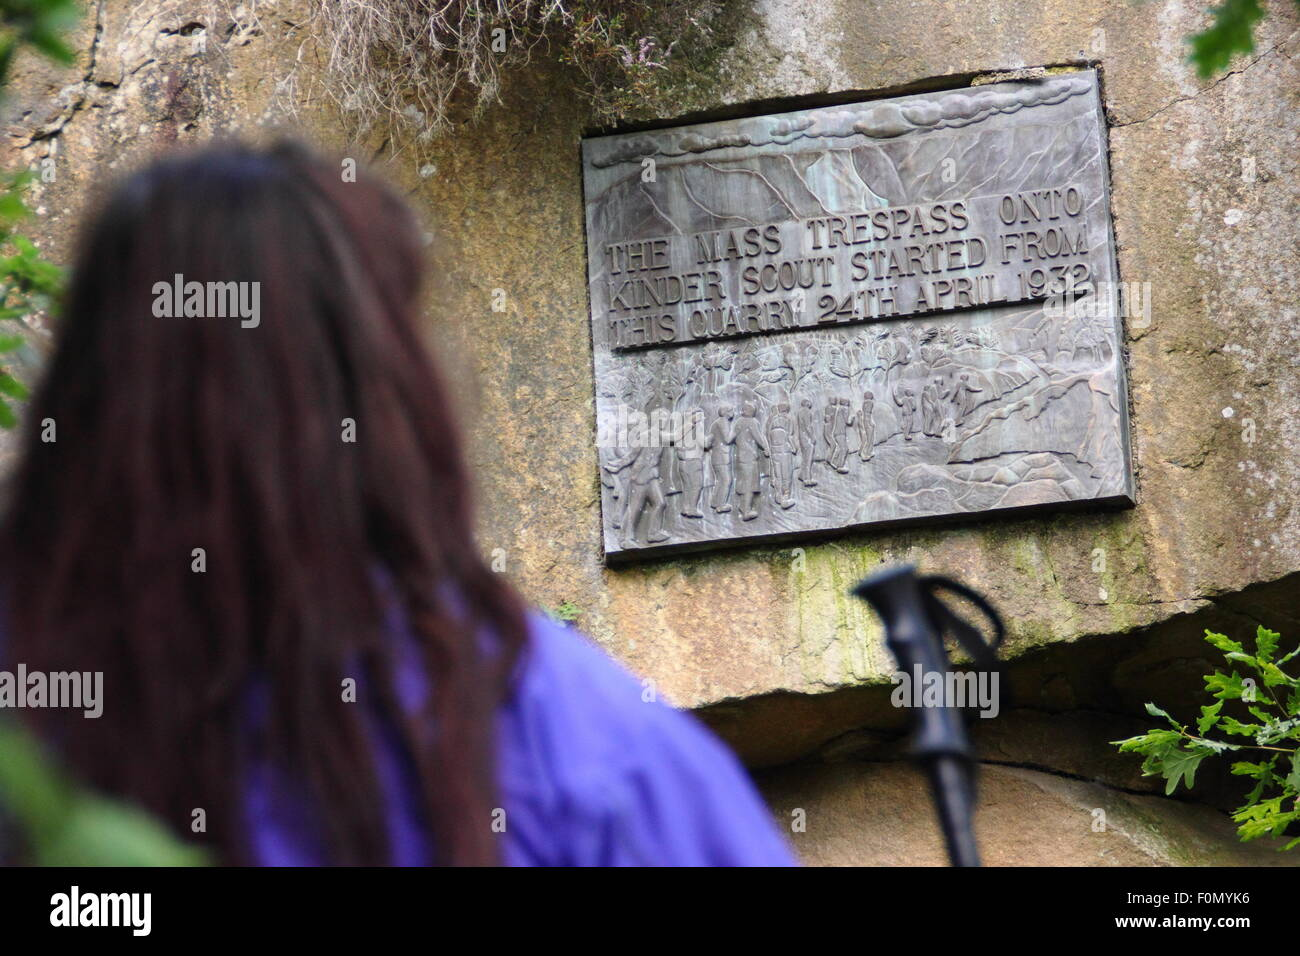 A female walker inspects the plaque in Bowden Bridge quarry that commemorates the mass trespass of Kinder Scout, - Stock Image